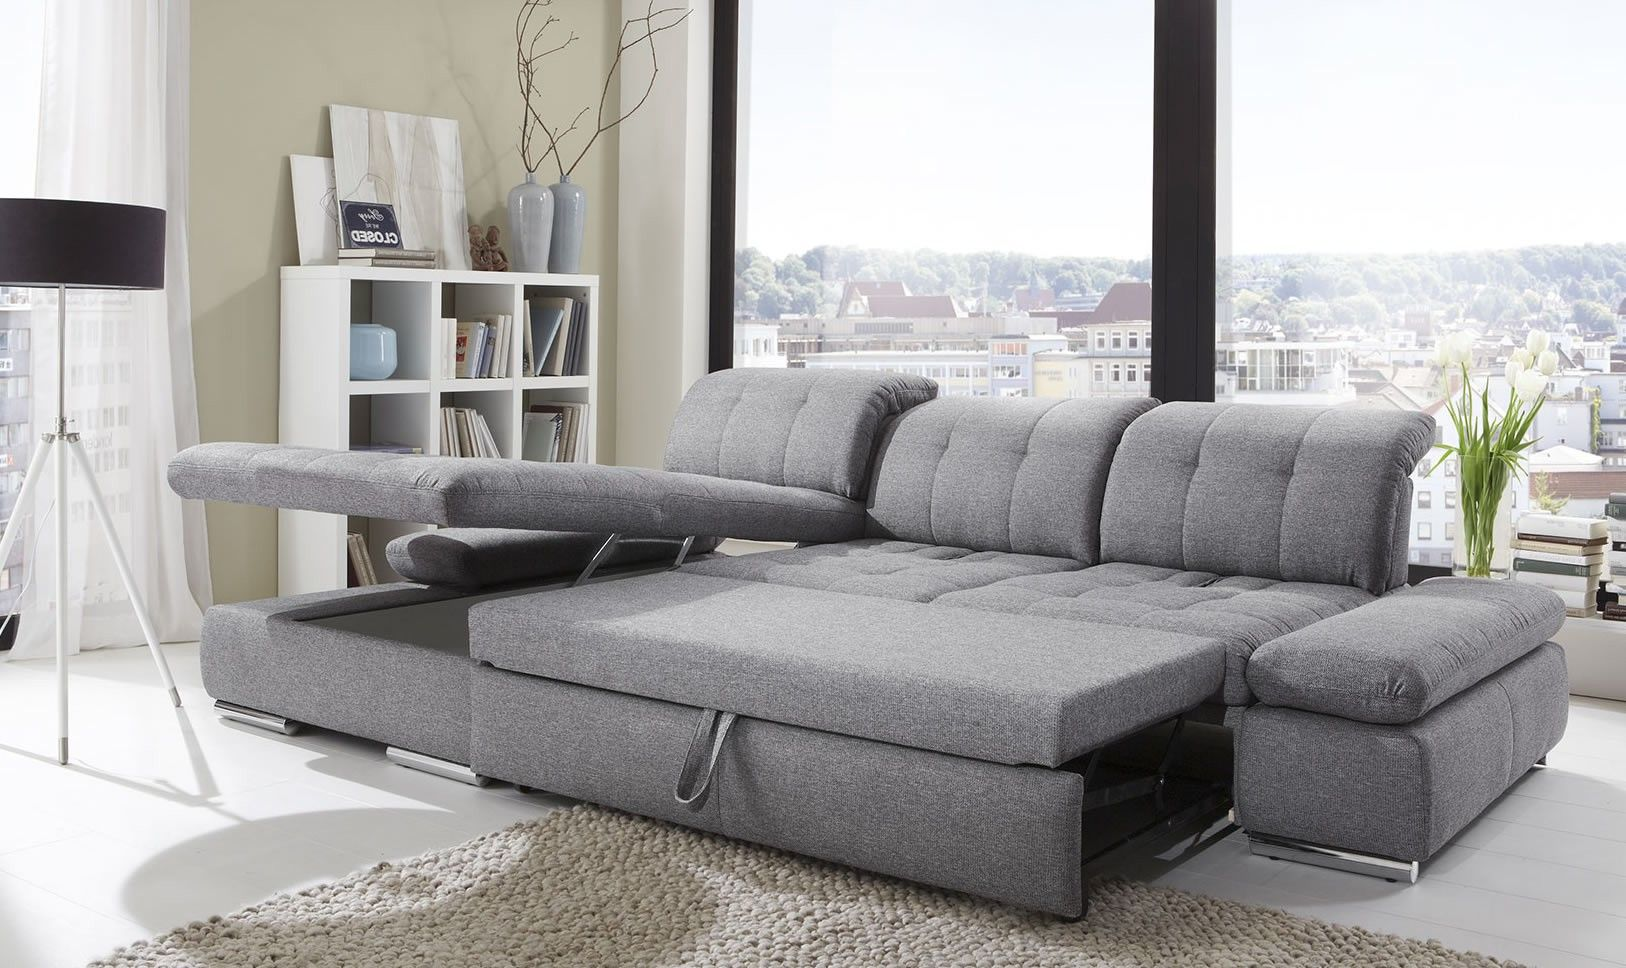 Modern Leather Sectional Sleeper Sofa White Curved Couches ...